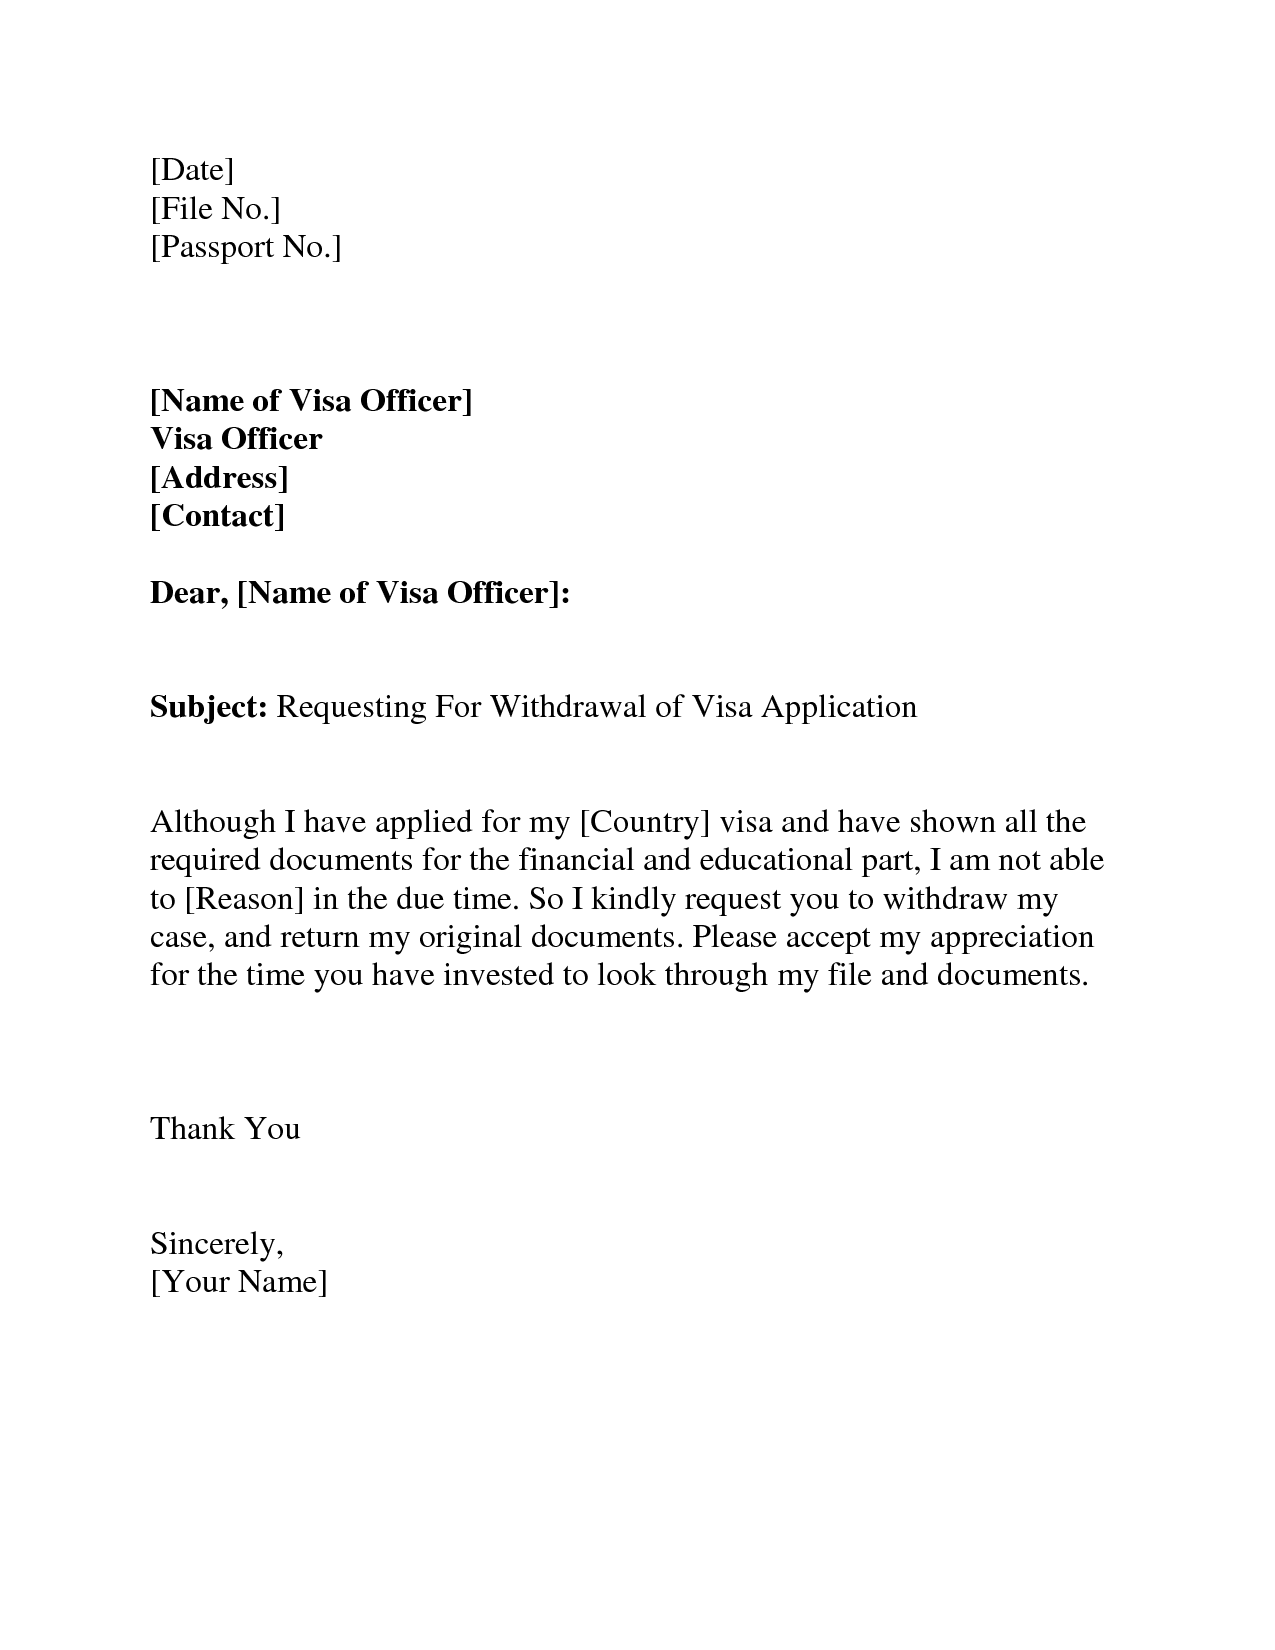 Visa Withdrawal Letter Request Format And Emailvisa Invitation To A Friend Example Lication Sample